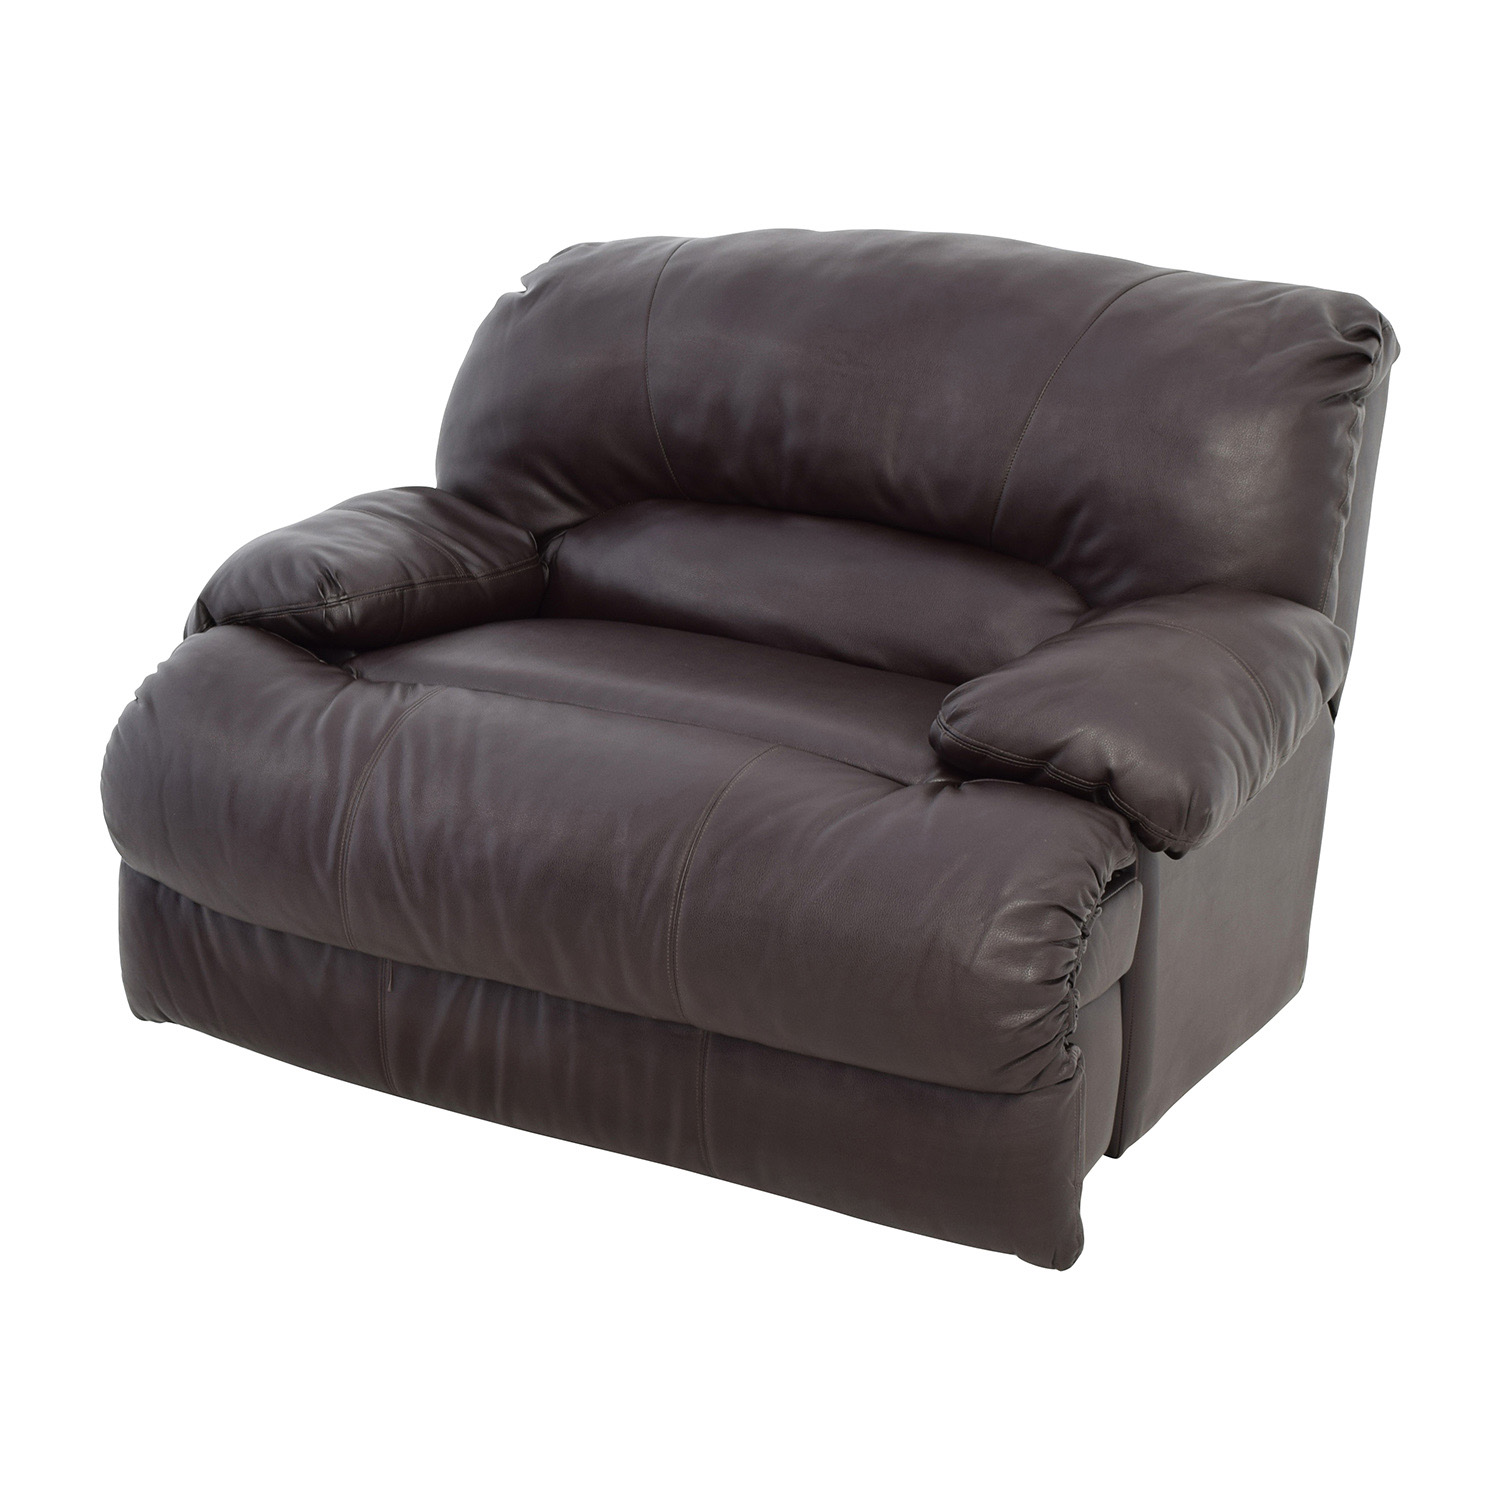 68 Off Brown Leather Reclining Loveseat Sofas